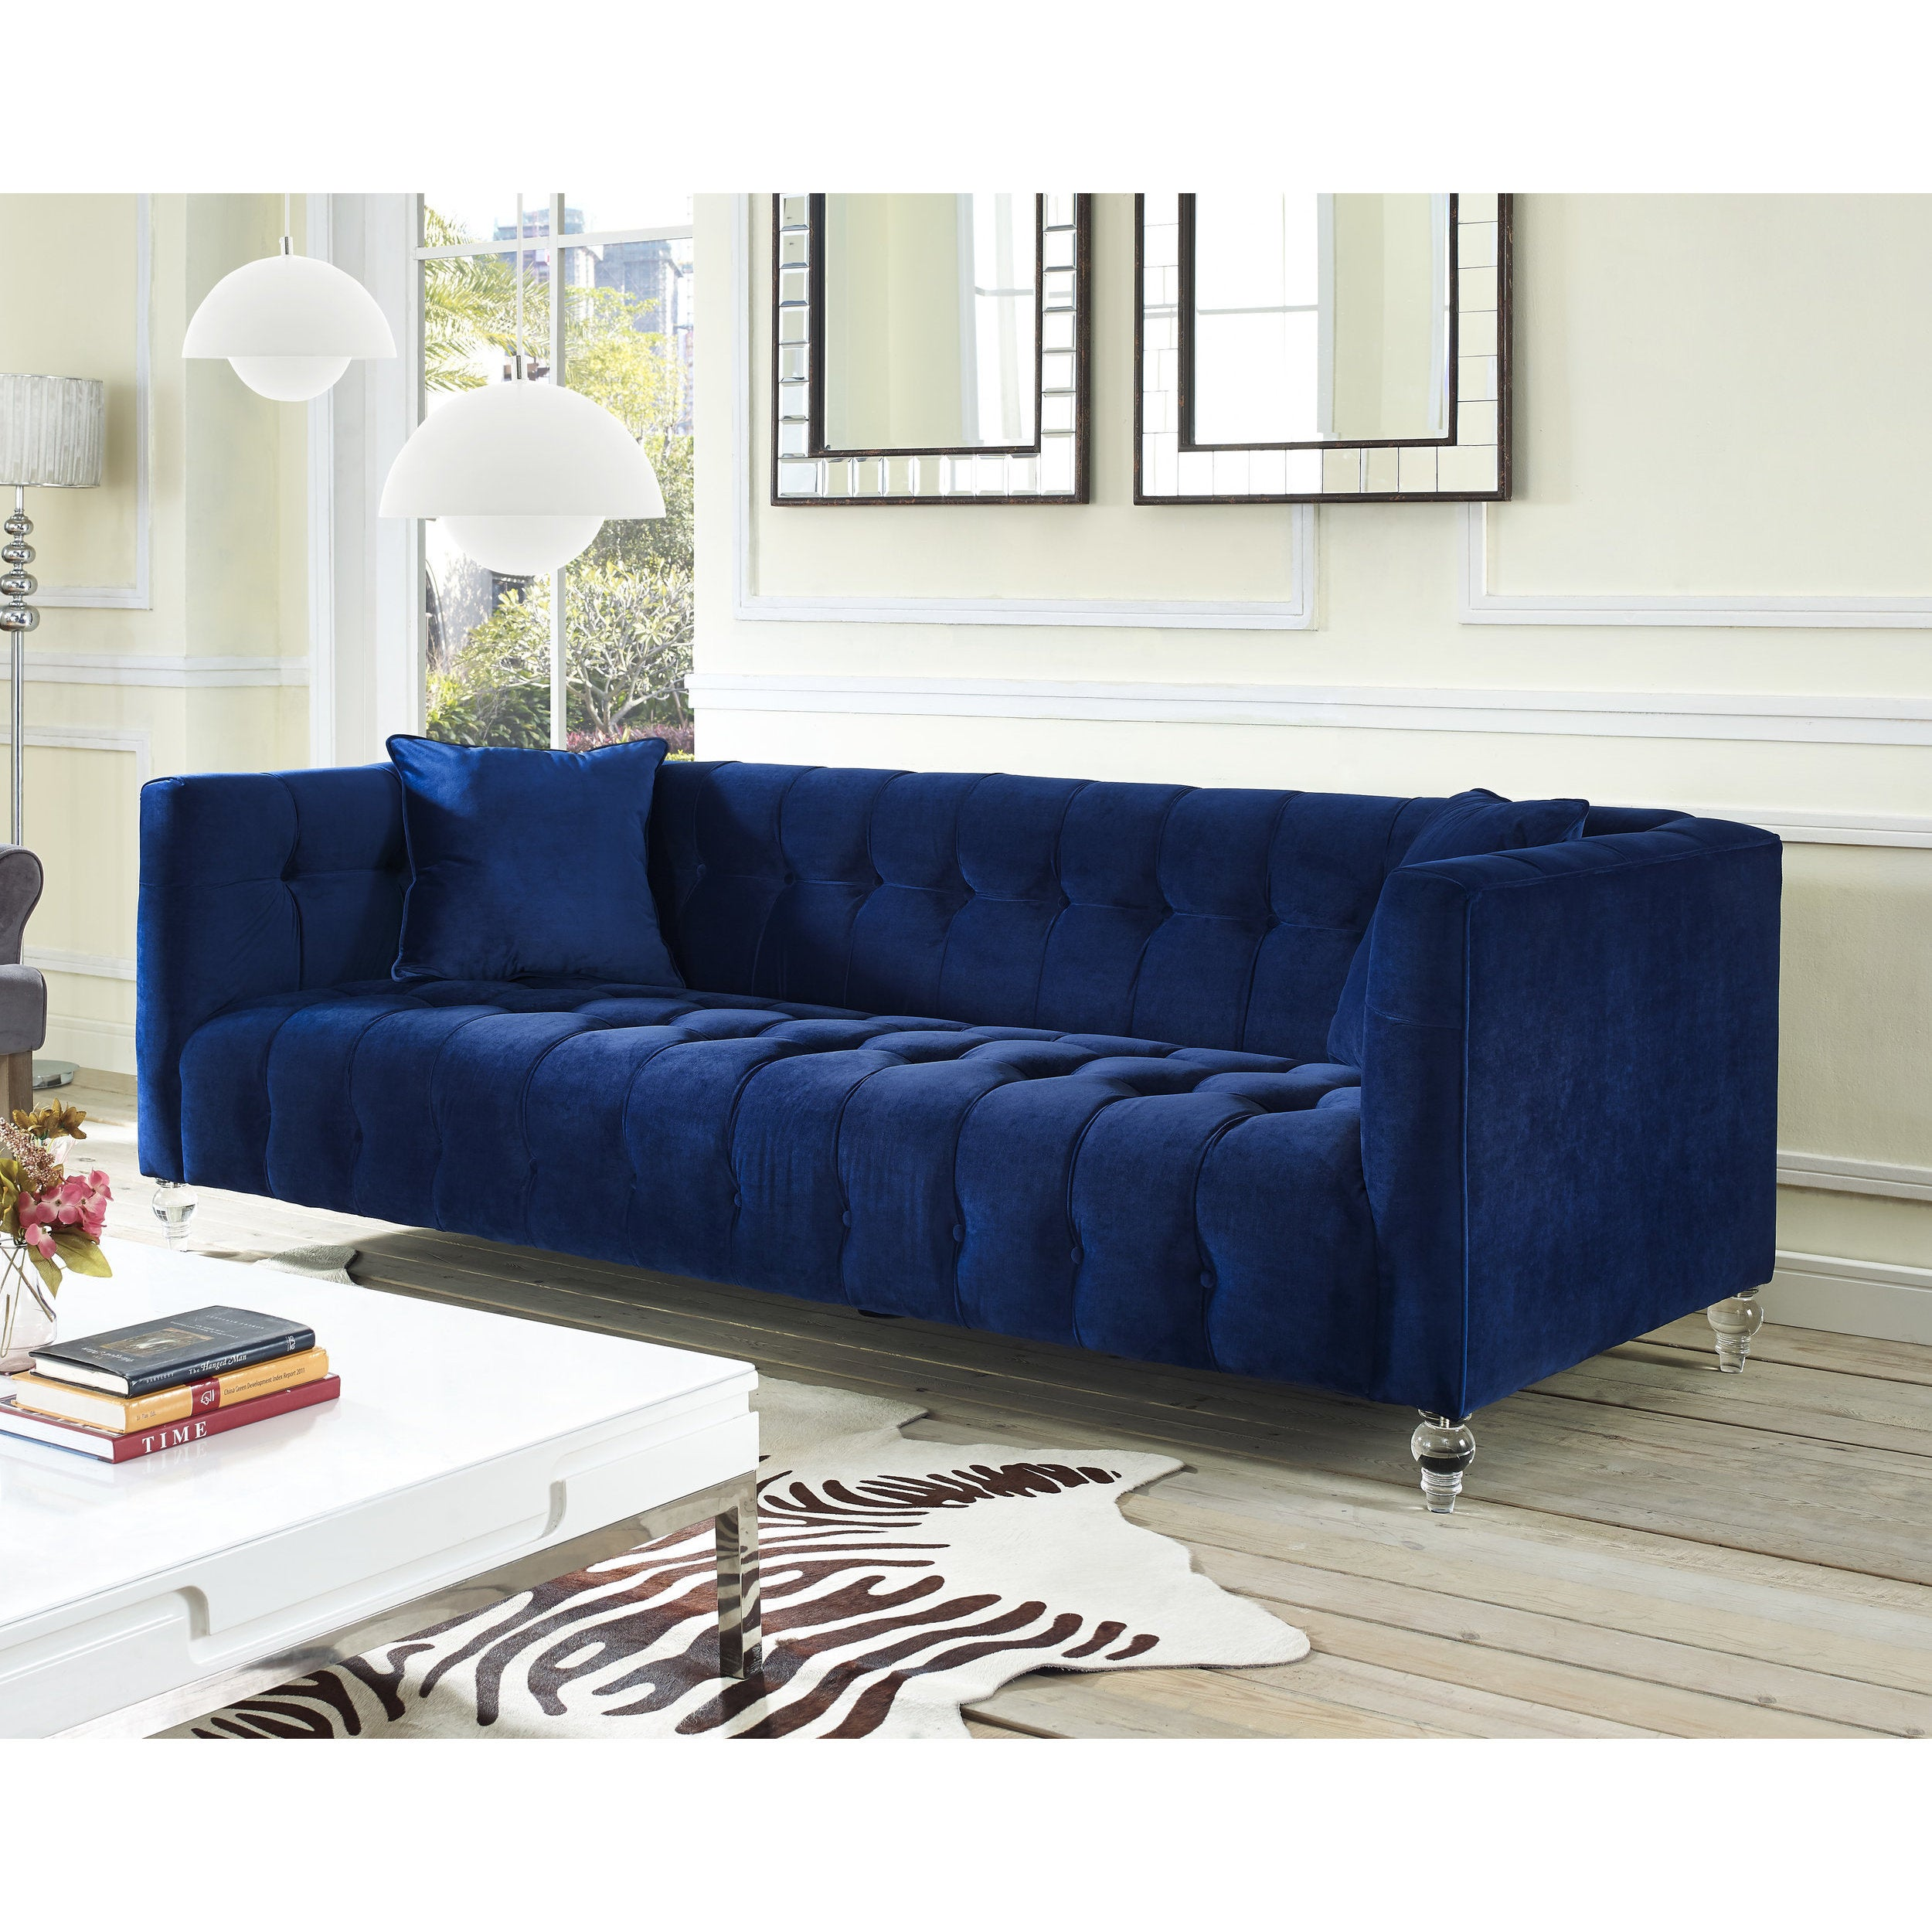 Swell Bea Navy Velvet Sofa Download Free Architecture Designs Photstoregrimeyleaguecom